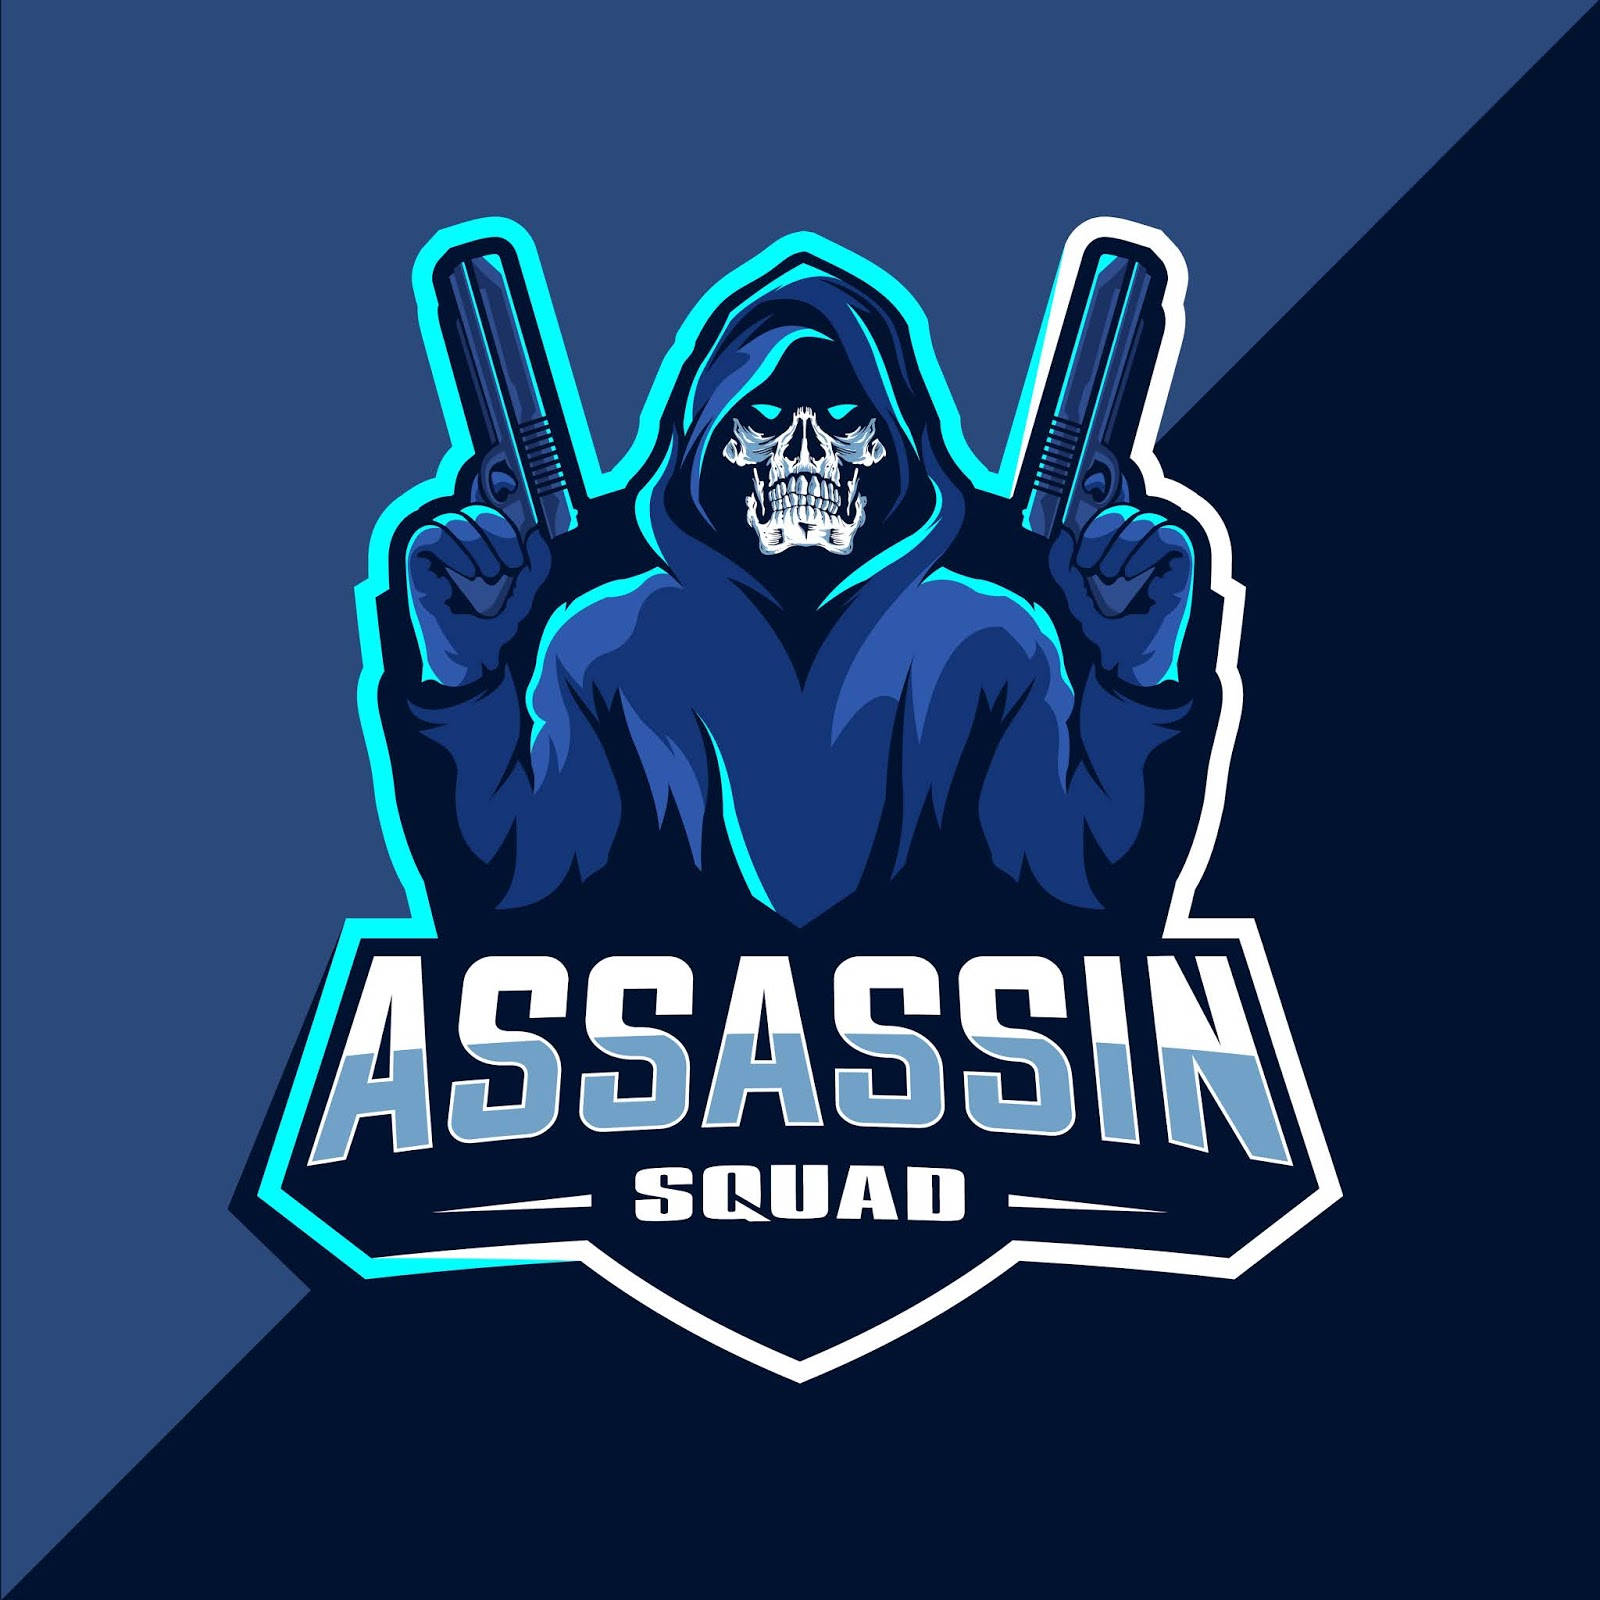 Assassin Skull With Guns Mascot Esport Logo Free Download Vector CDR, AI, EPS and PNG Formats